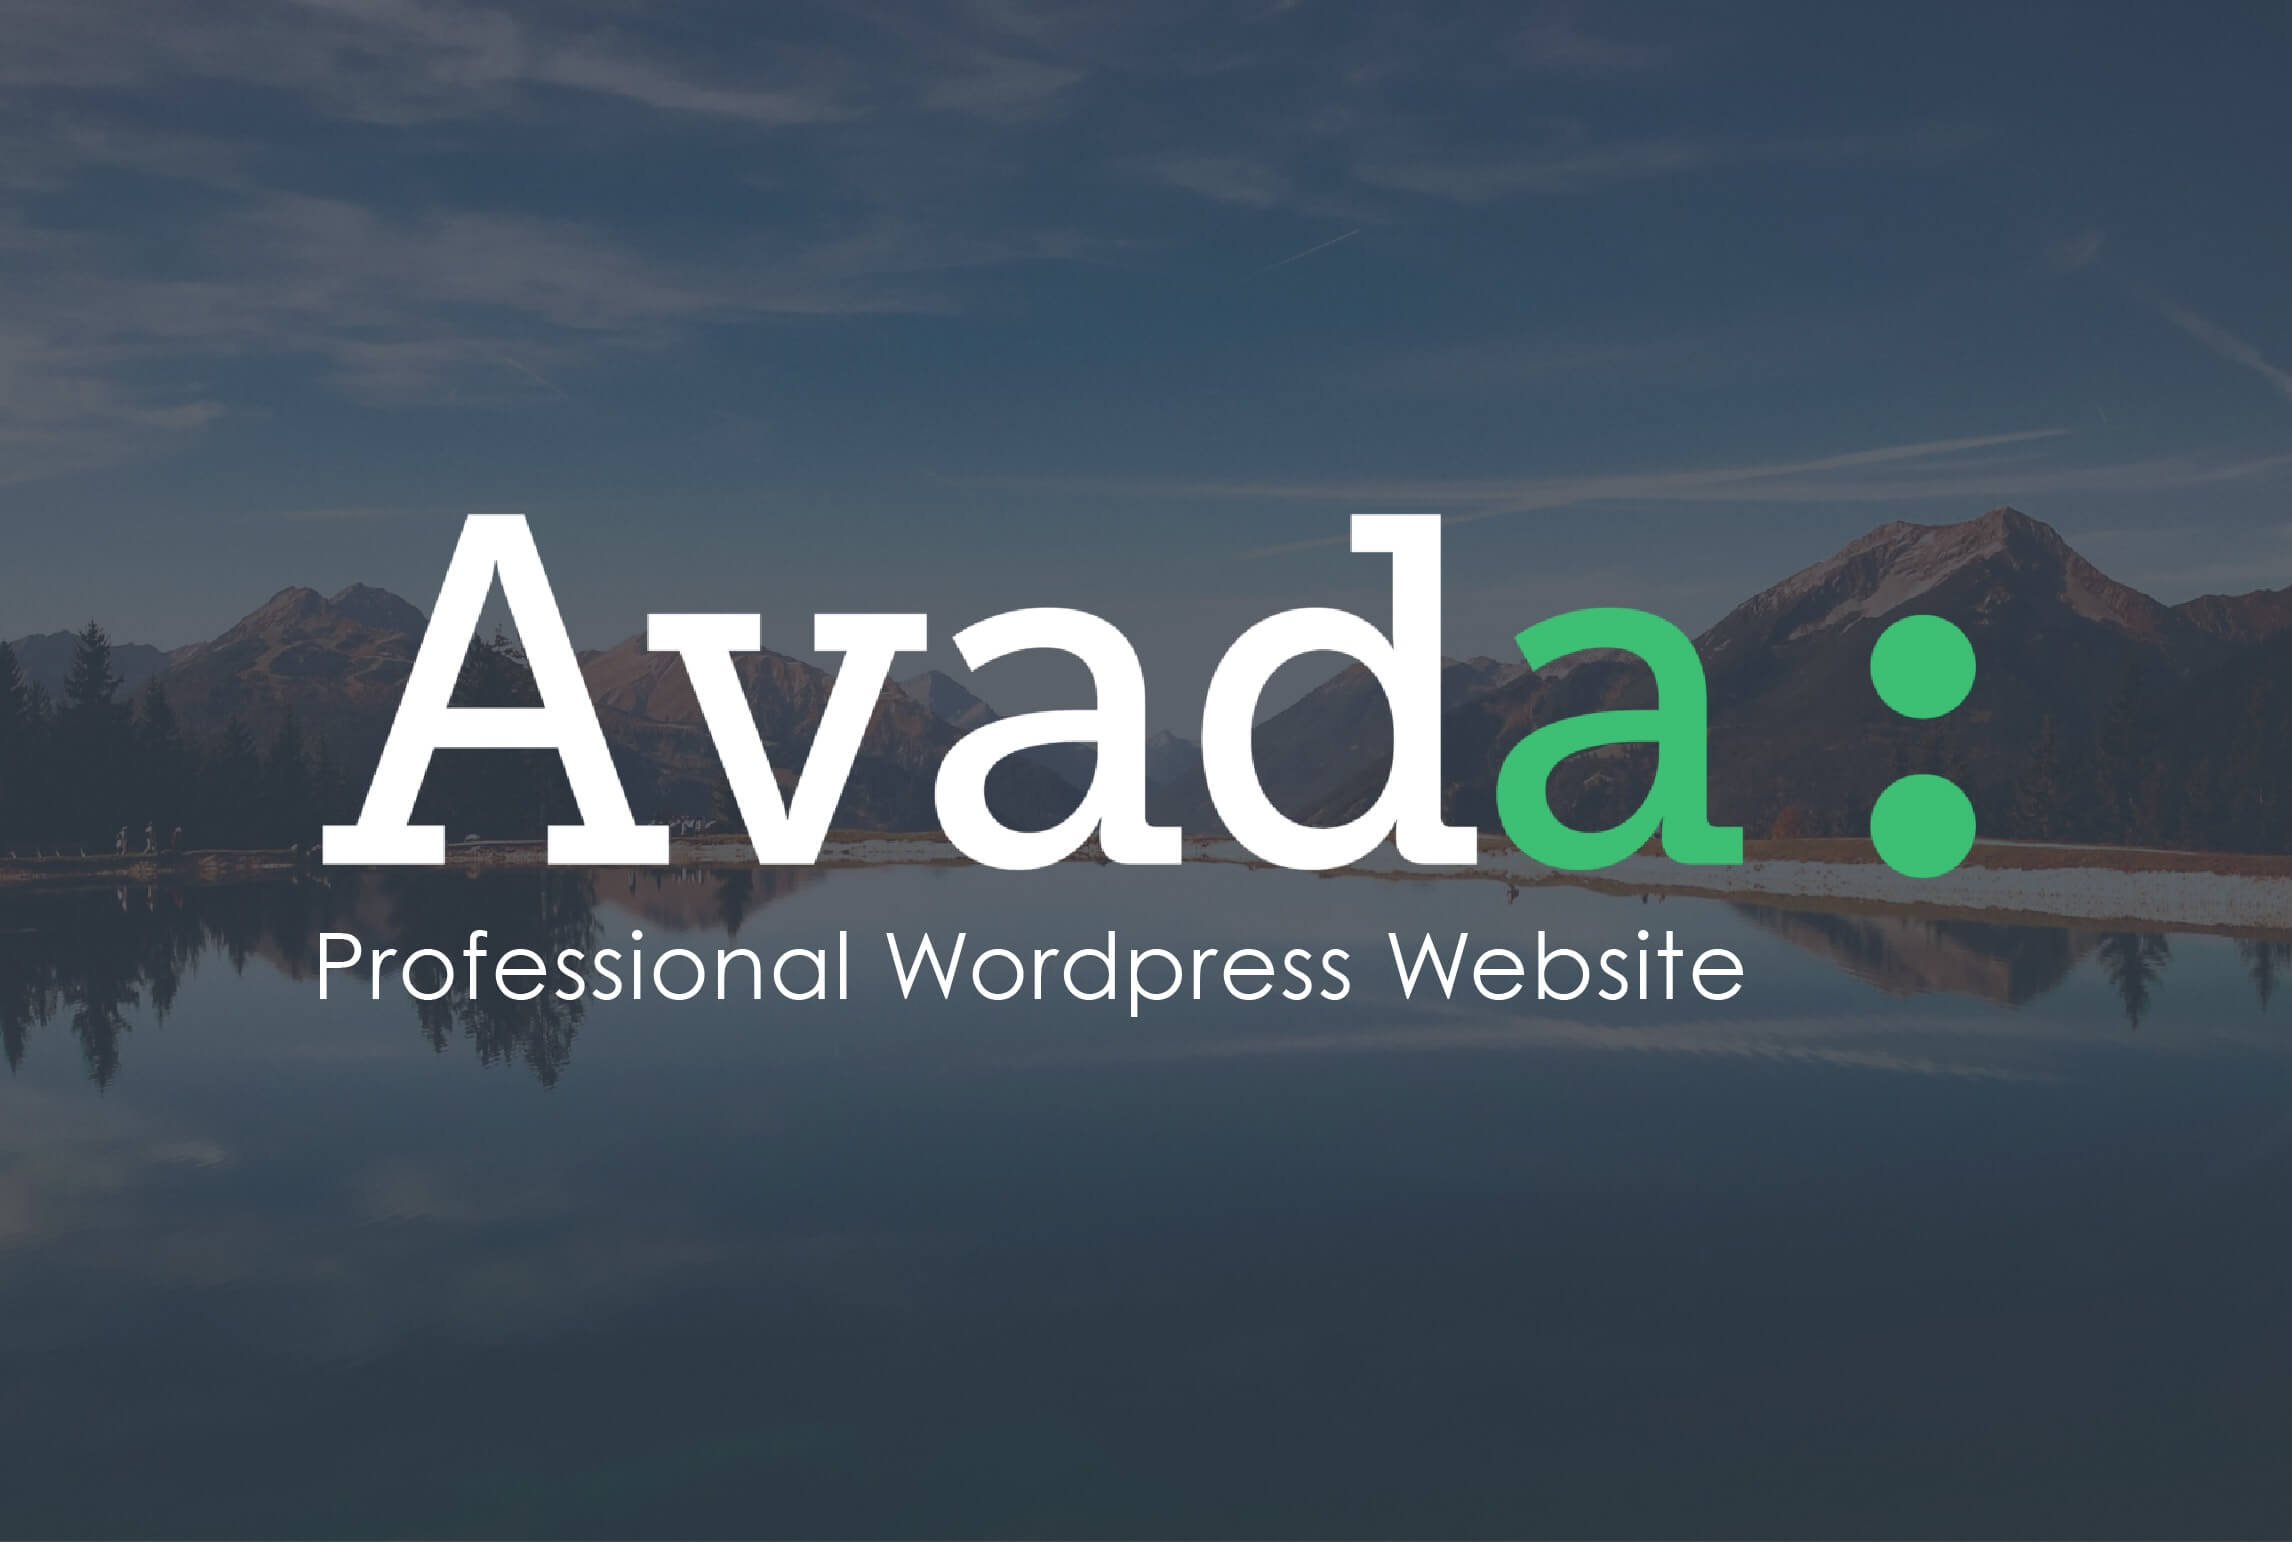 design professional-wordpress website in avada theme